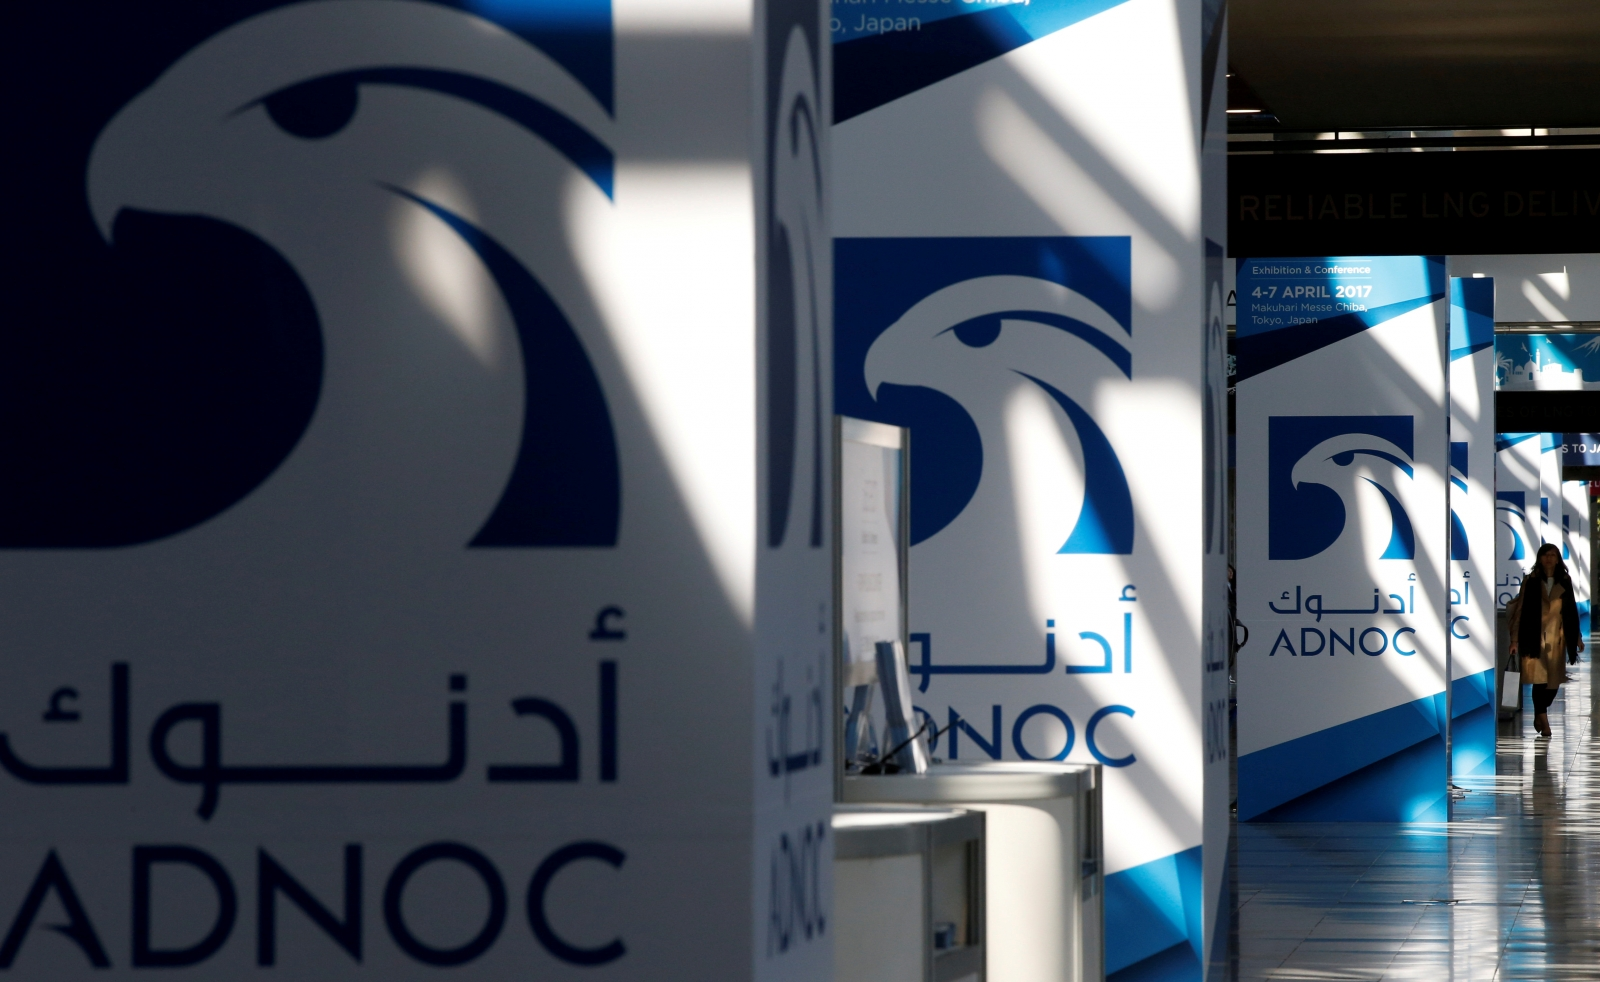 Abu Dhabi National Oil Company adnoc logo